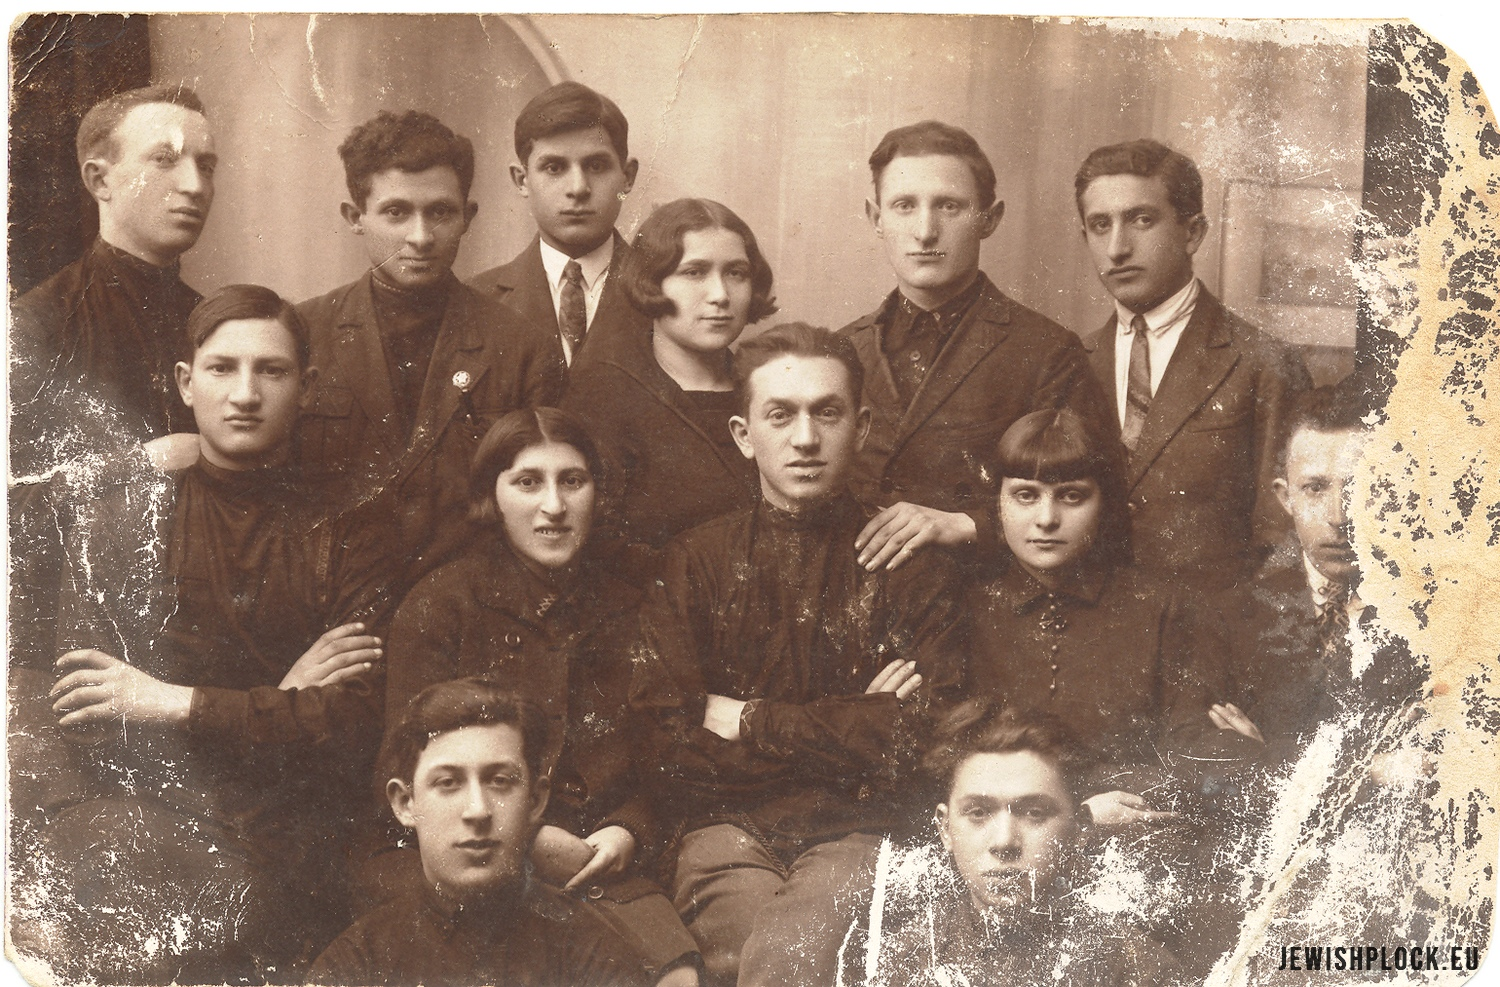 Members of the Płock branch of Hechaluc - Pioneer, 1931 (photo from the collection of the Emanuel Ringelblum Jewish Historical Institute in Warsaw), JewishPlock.eu